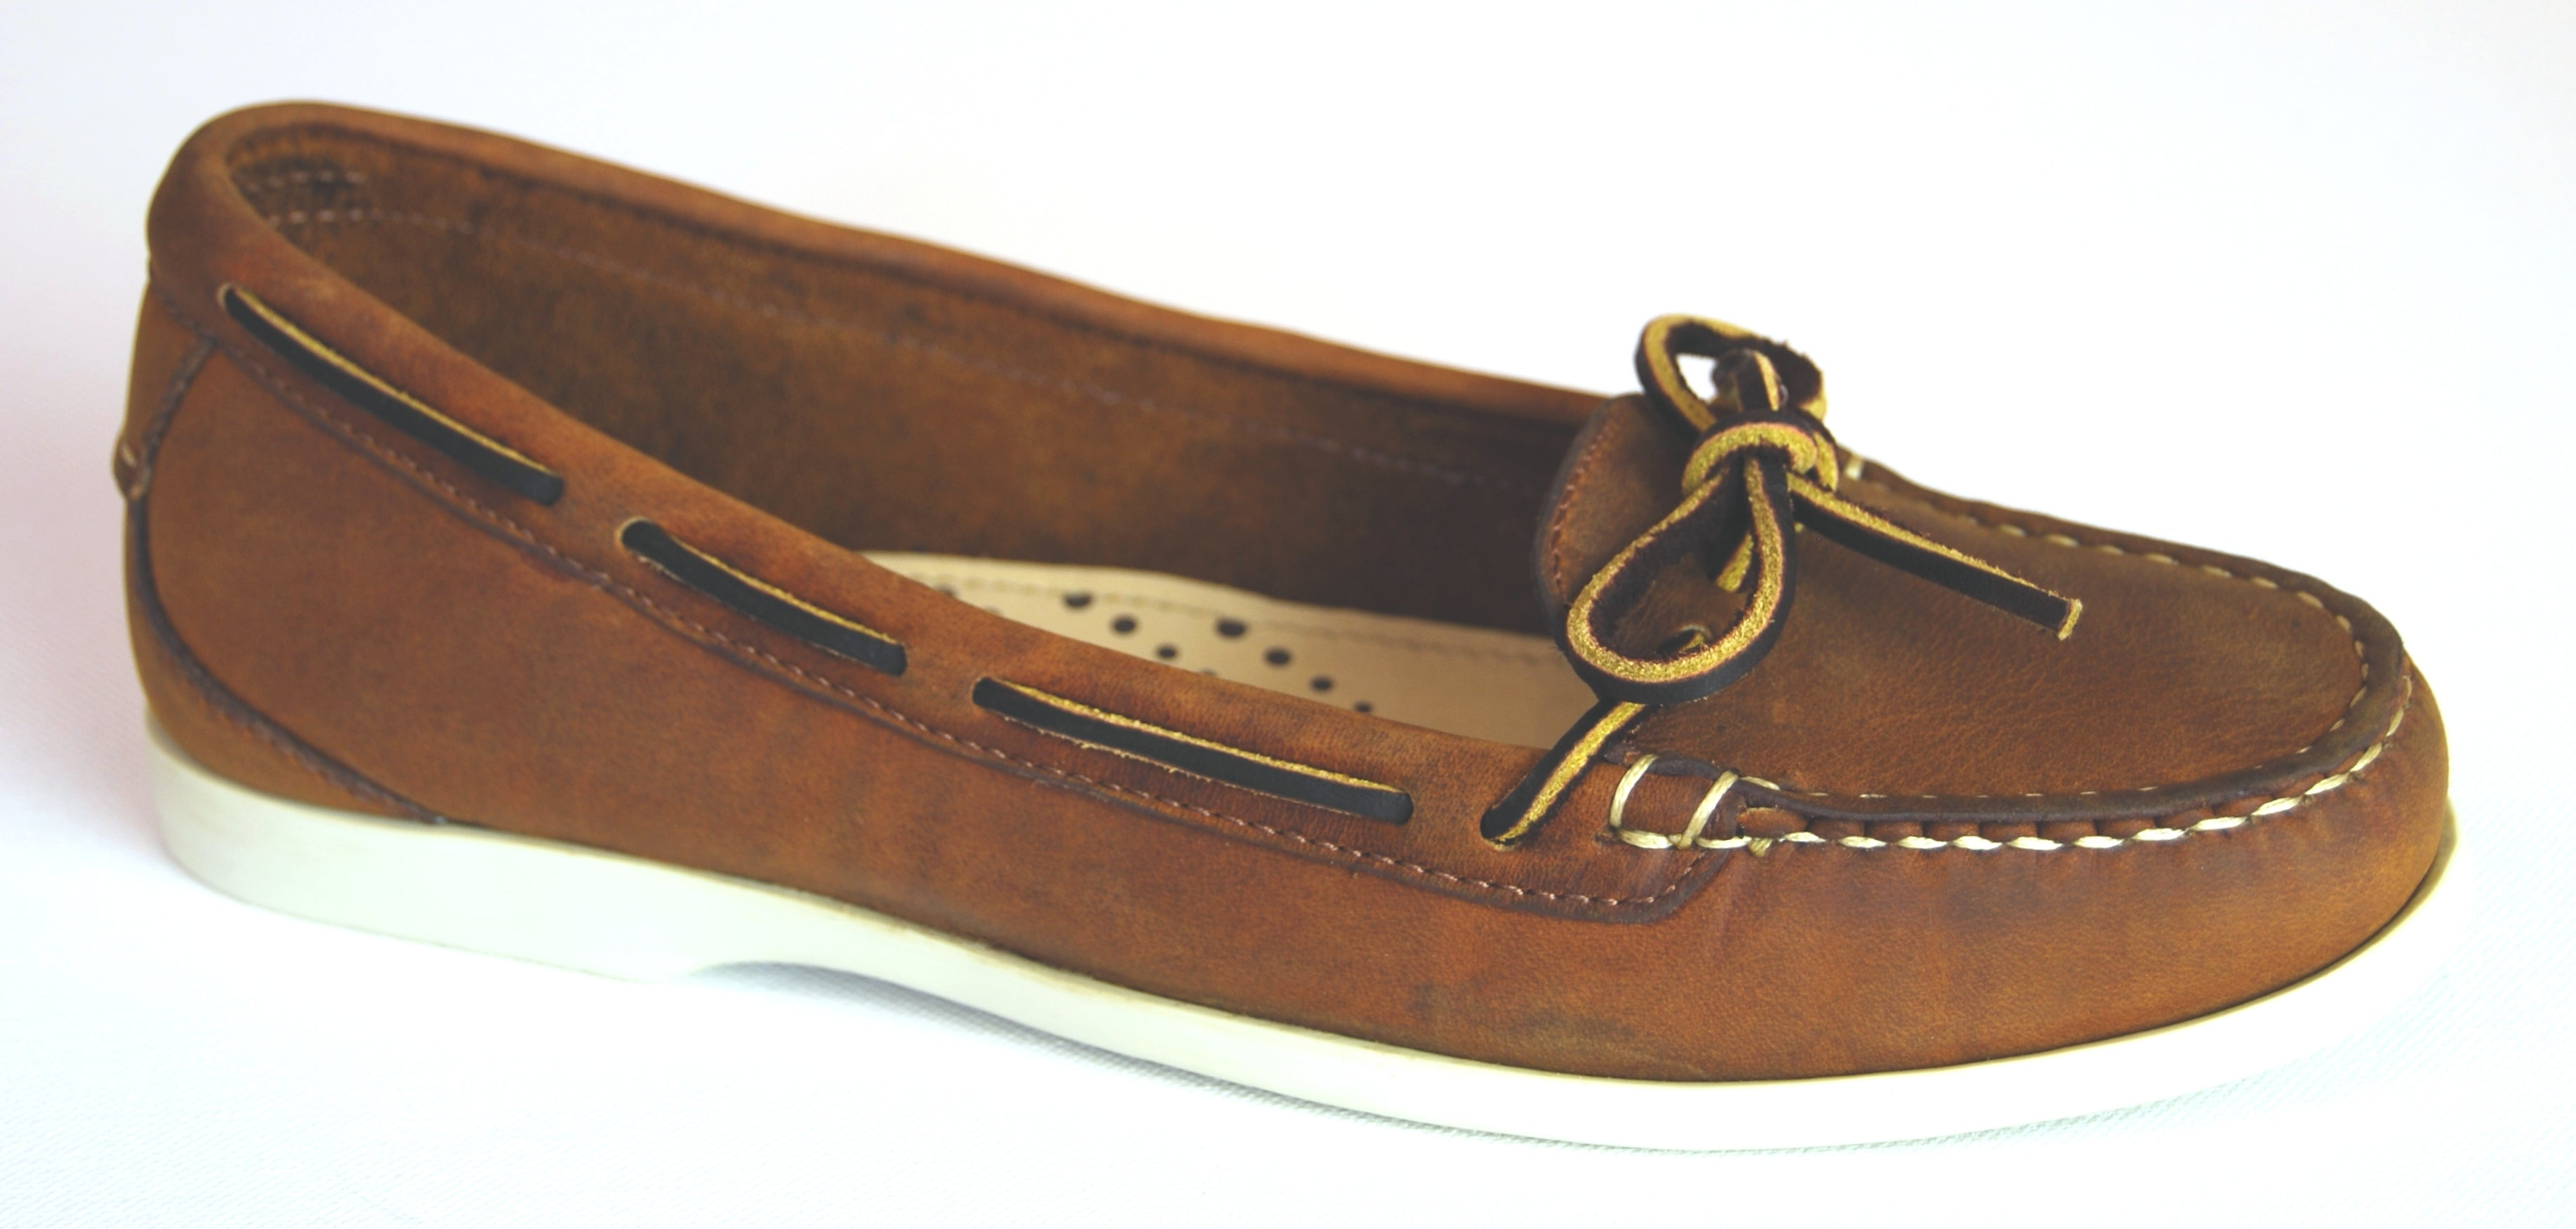 Orca Bay Bay Deck Shoes for Ladies in Sand